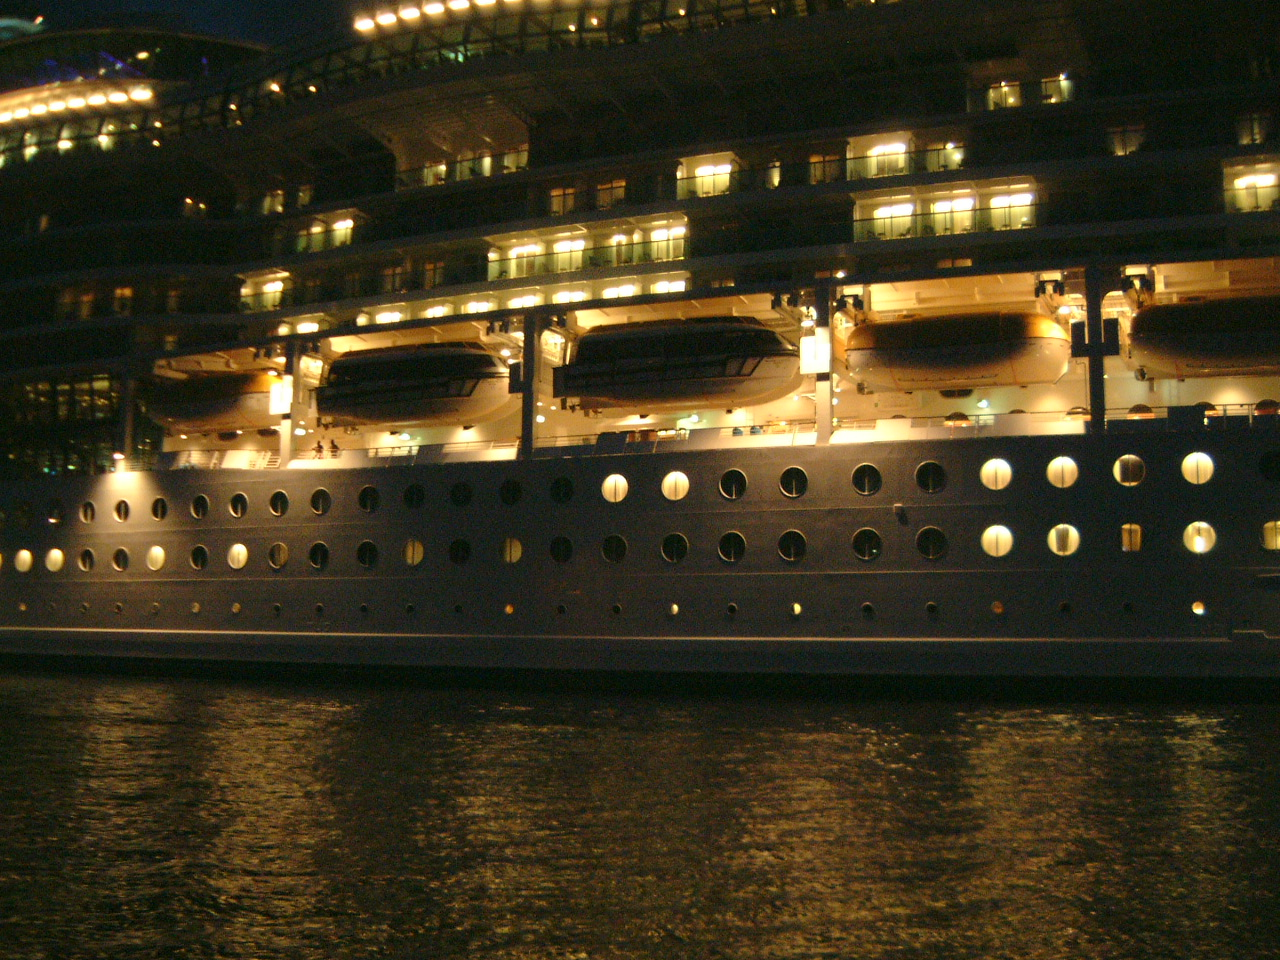 maartent ship ocean liner cruise boat lights nighttime portholes party